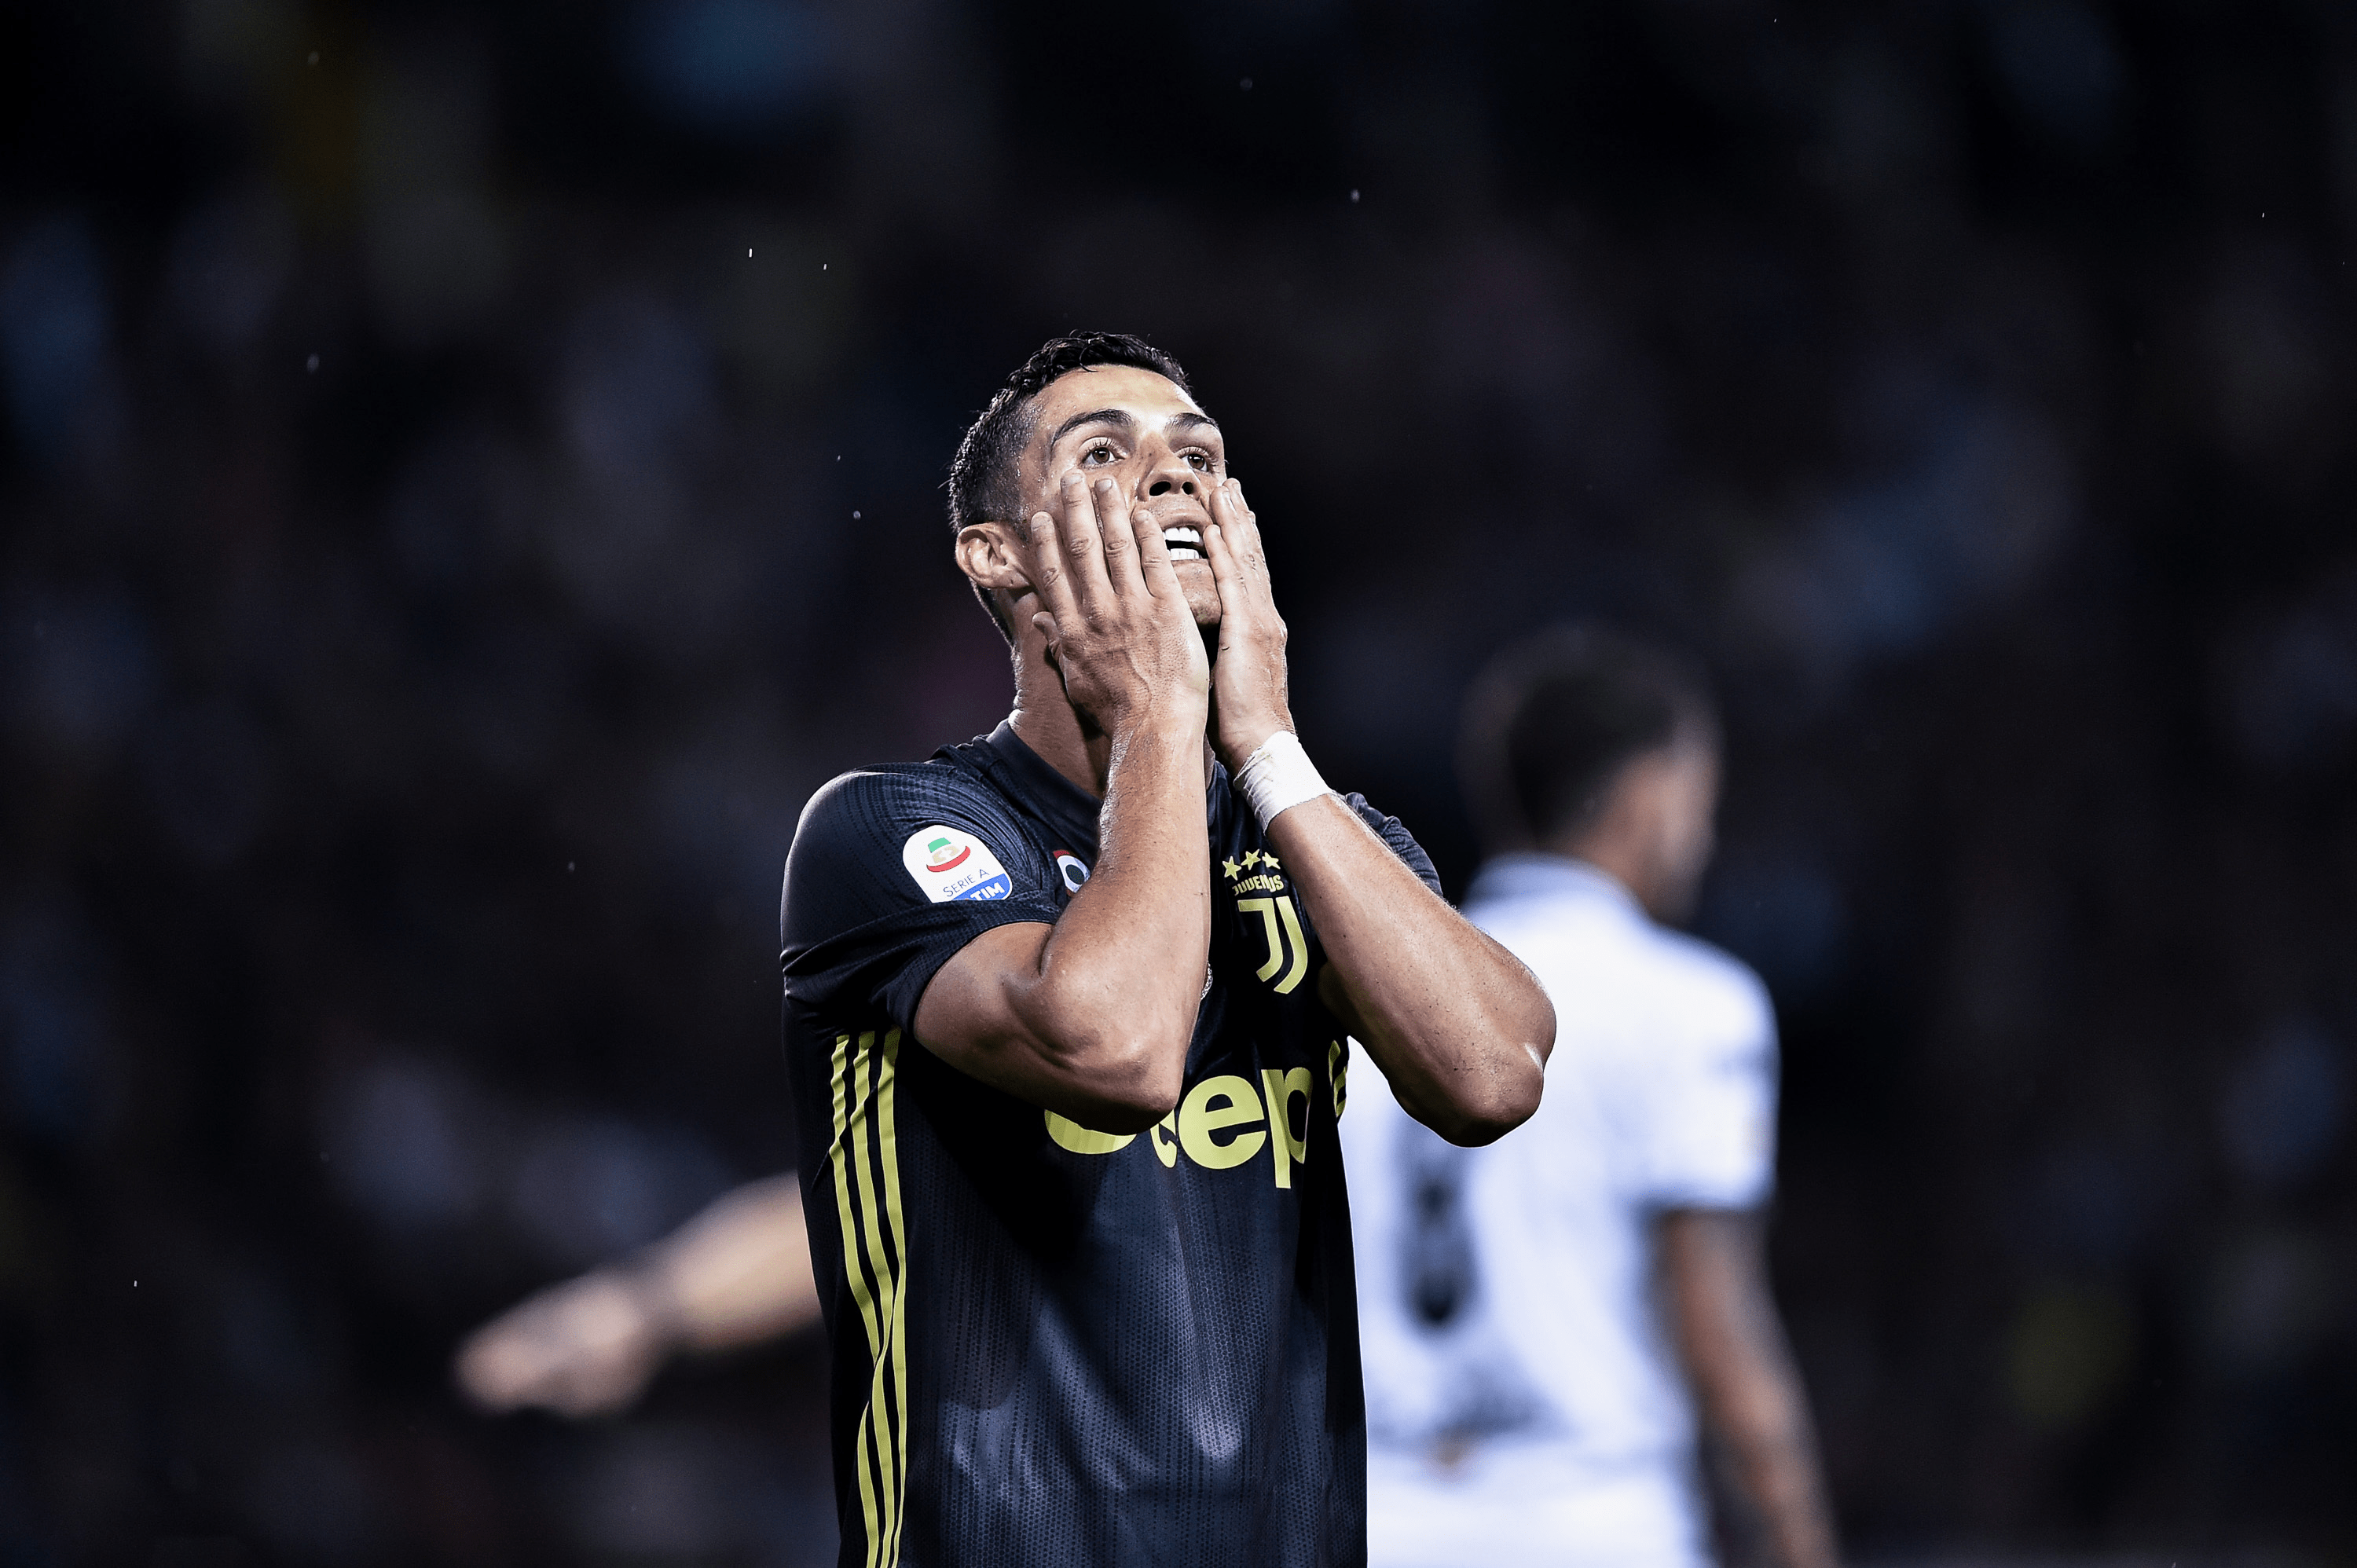 Real Madrid Apparently Made A Loss On Ronaldo's Transfer To Juventus